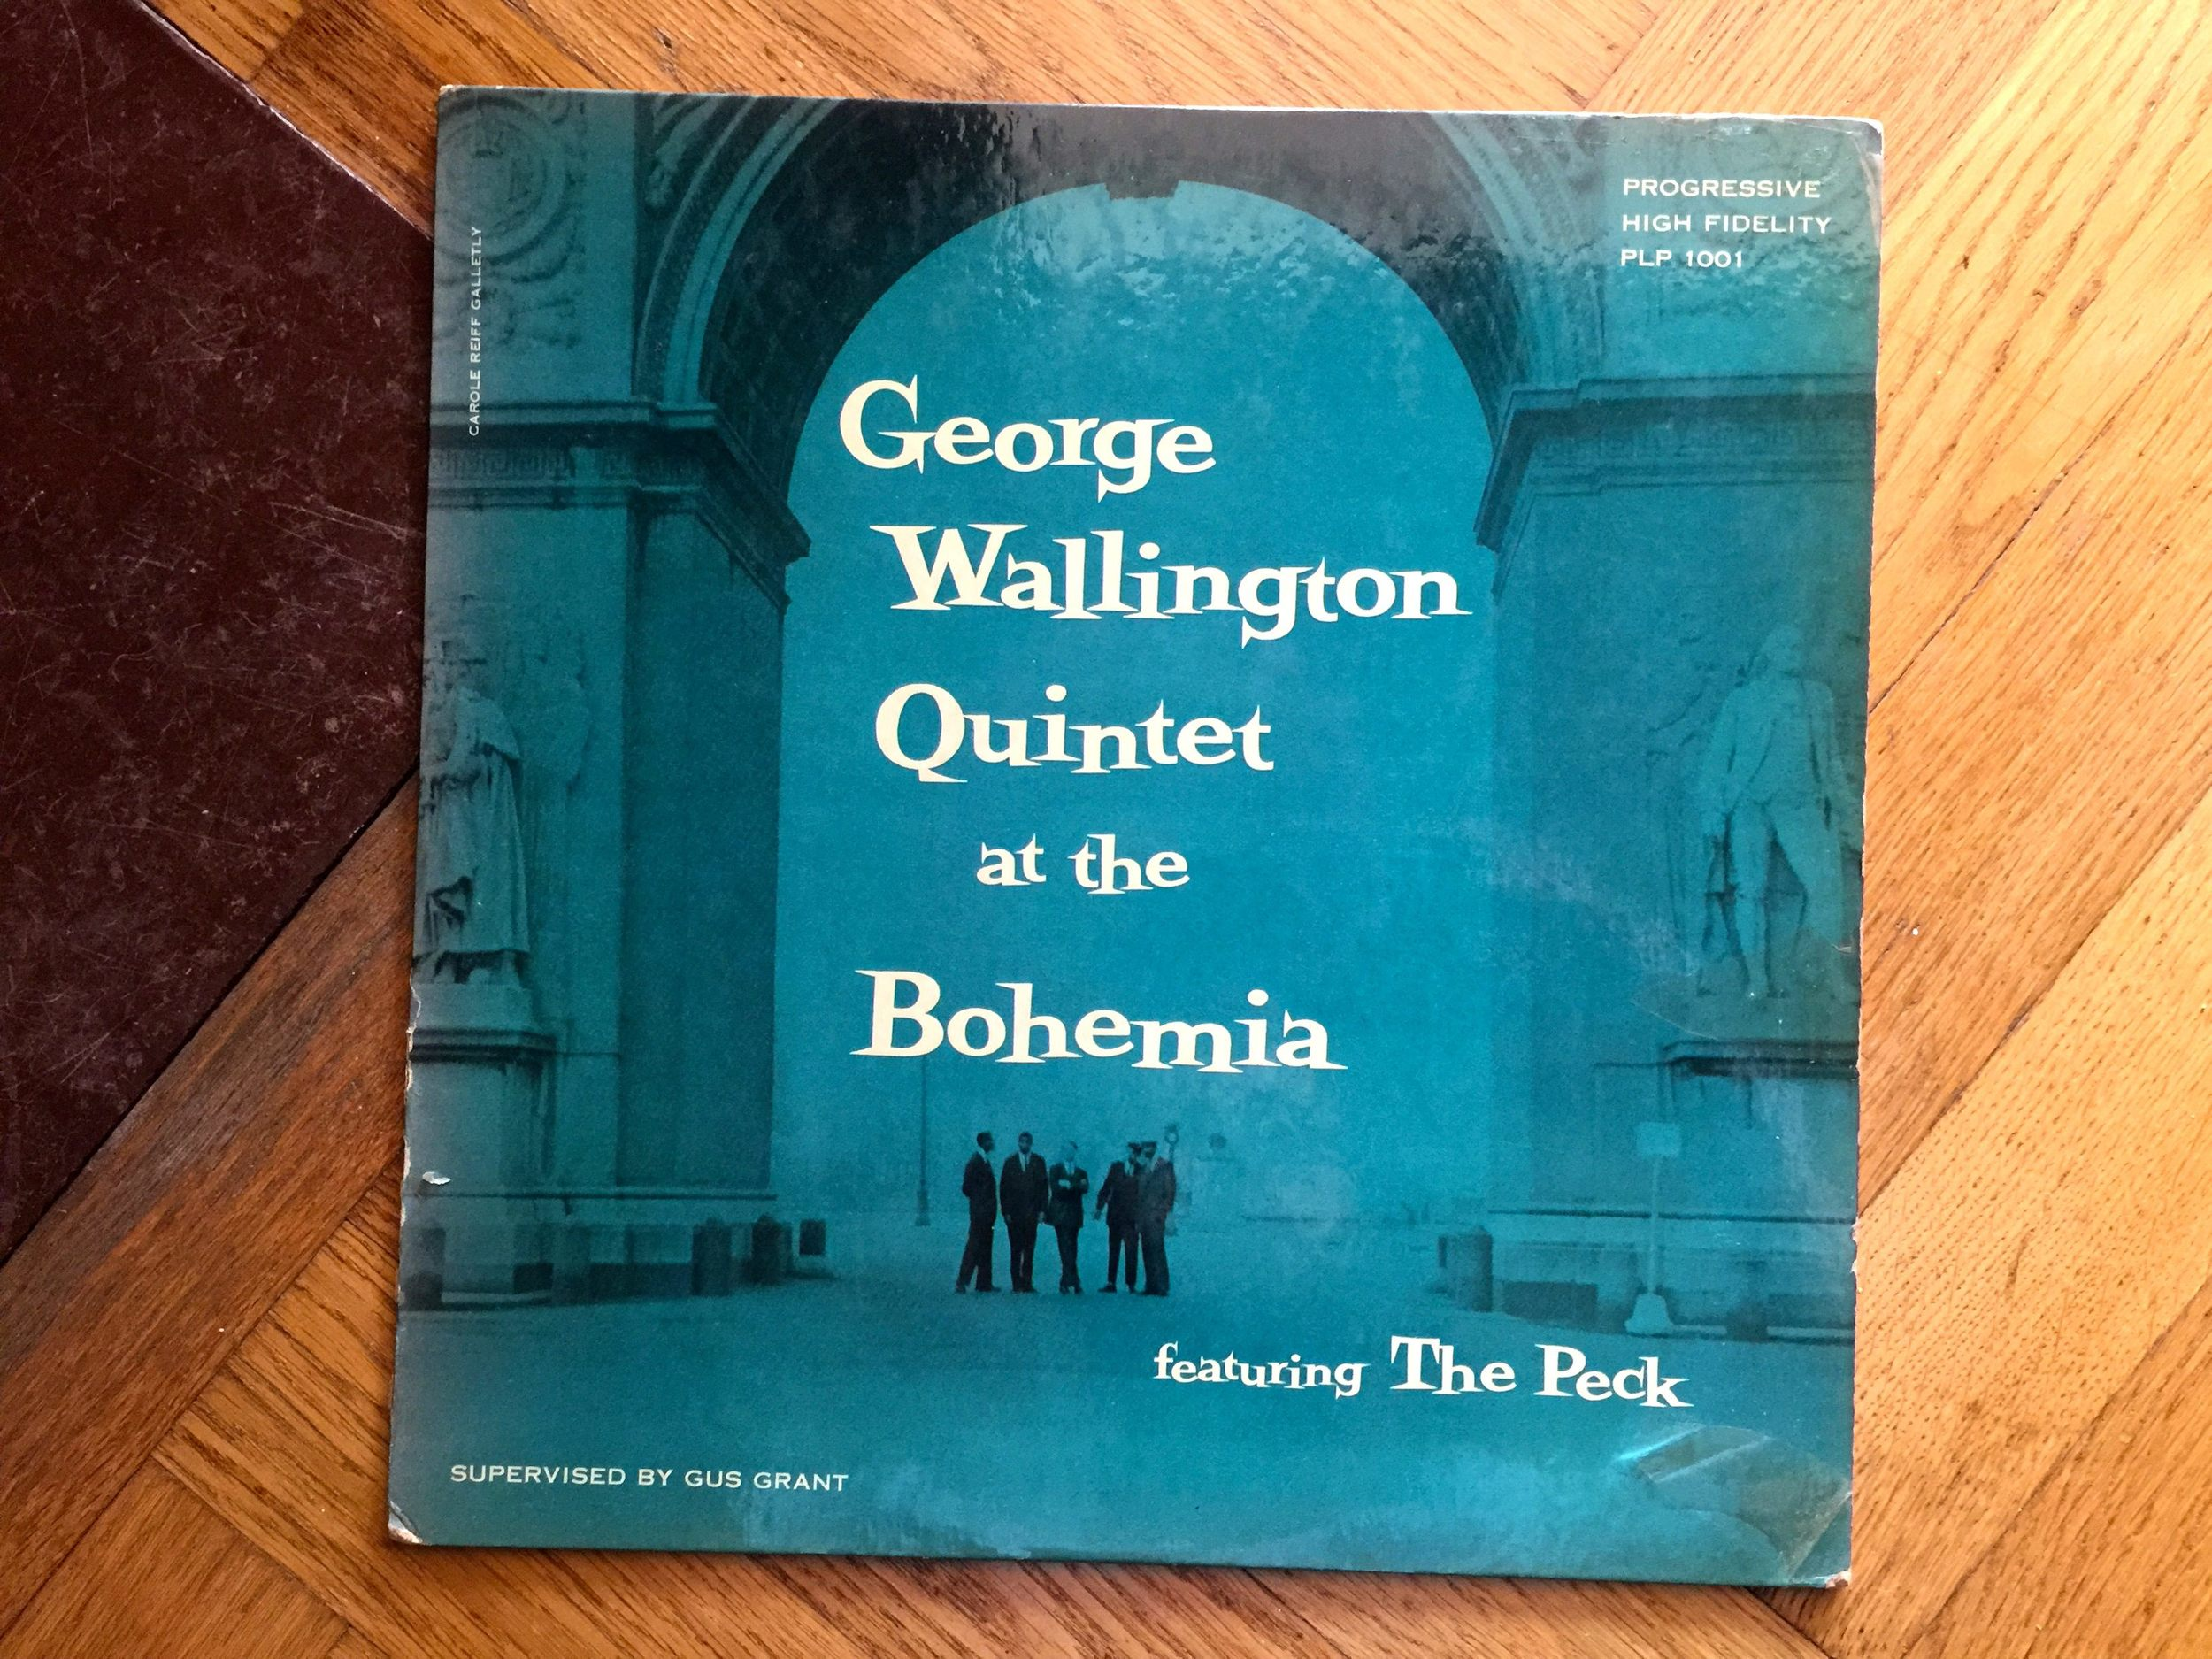 A very rare live LP worth checking out.